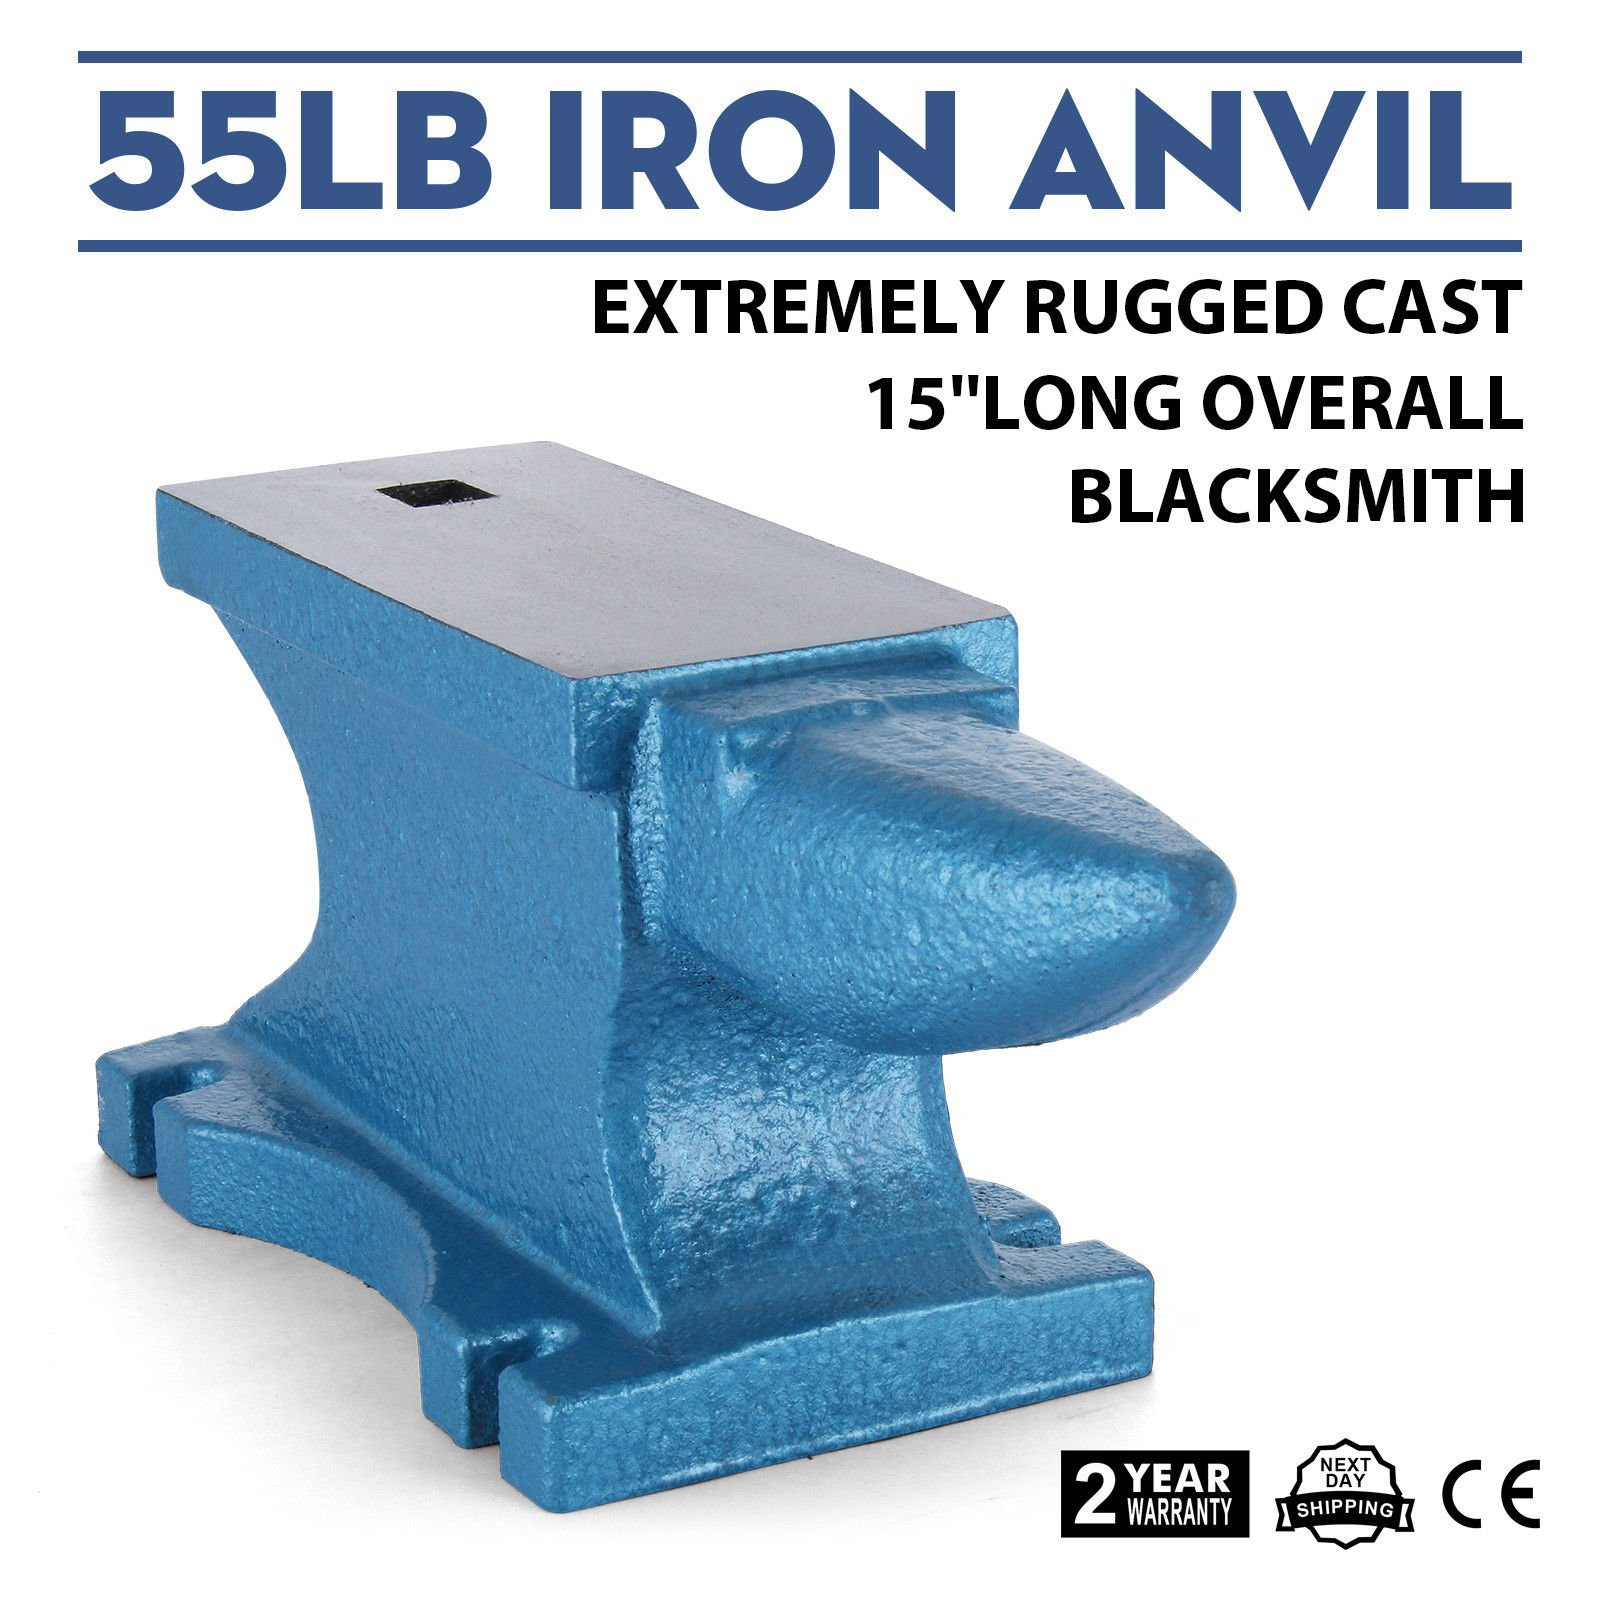 LOVSHARE 66 LBS Double Horn Anvil Steel Surface Cast Iron Stithy Rugged Round Blacksmith/¡/¯s Anvil Industrial Tool Base Jeweler Tool for Metal Jewler MetalSmith Silversmith